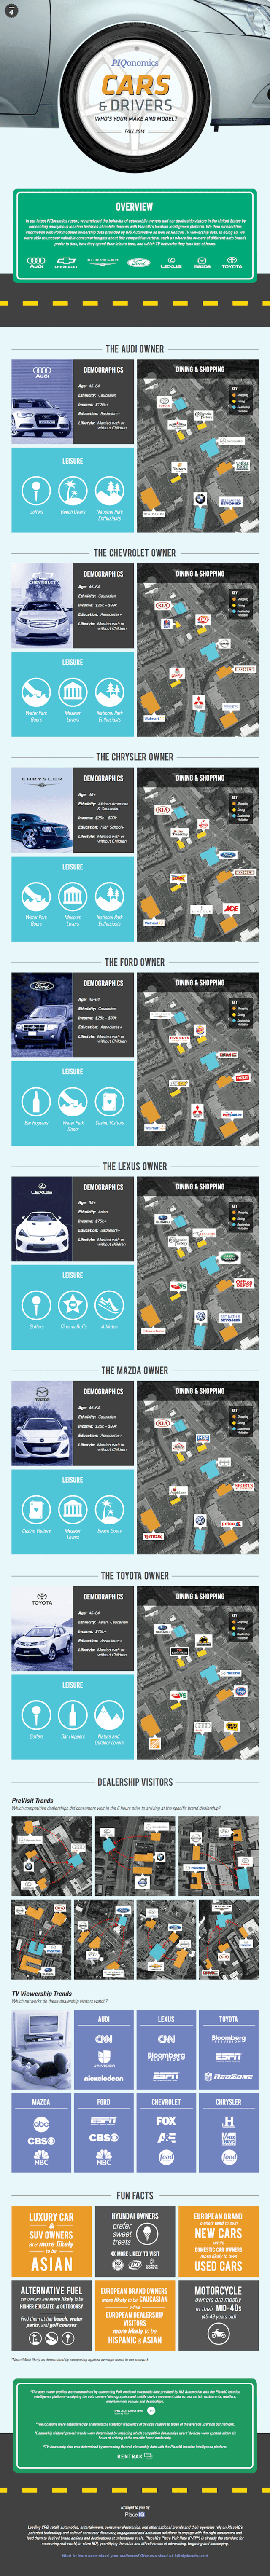 Auto Industry and Restaurant Location Intelligence